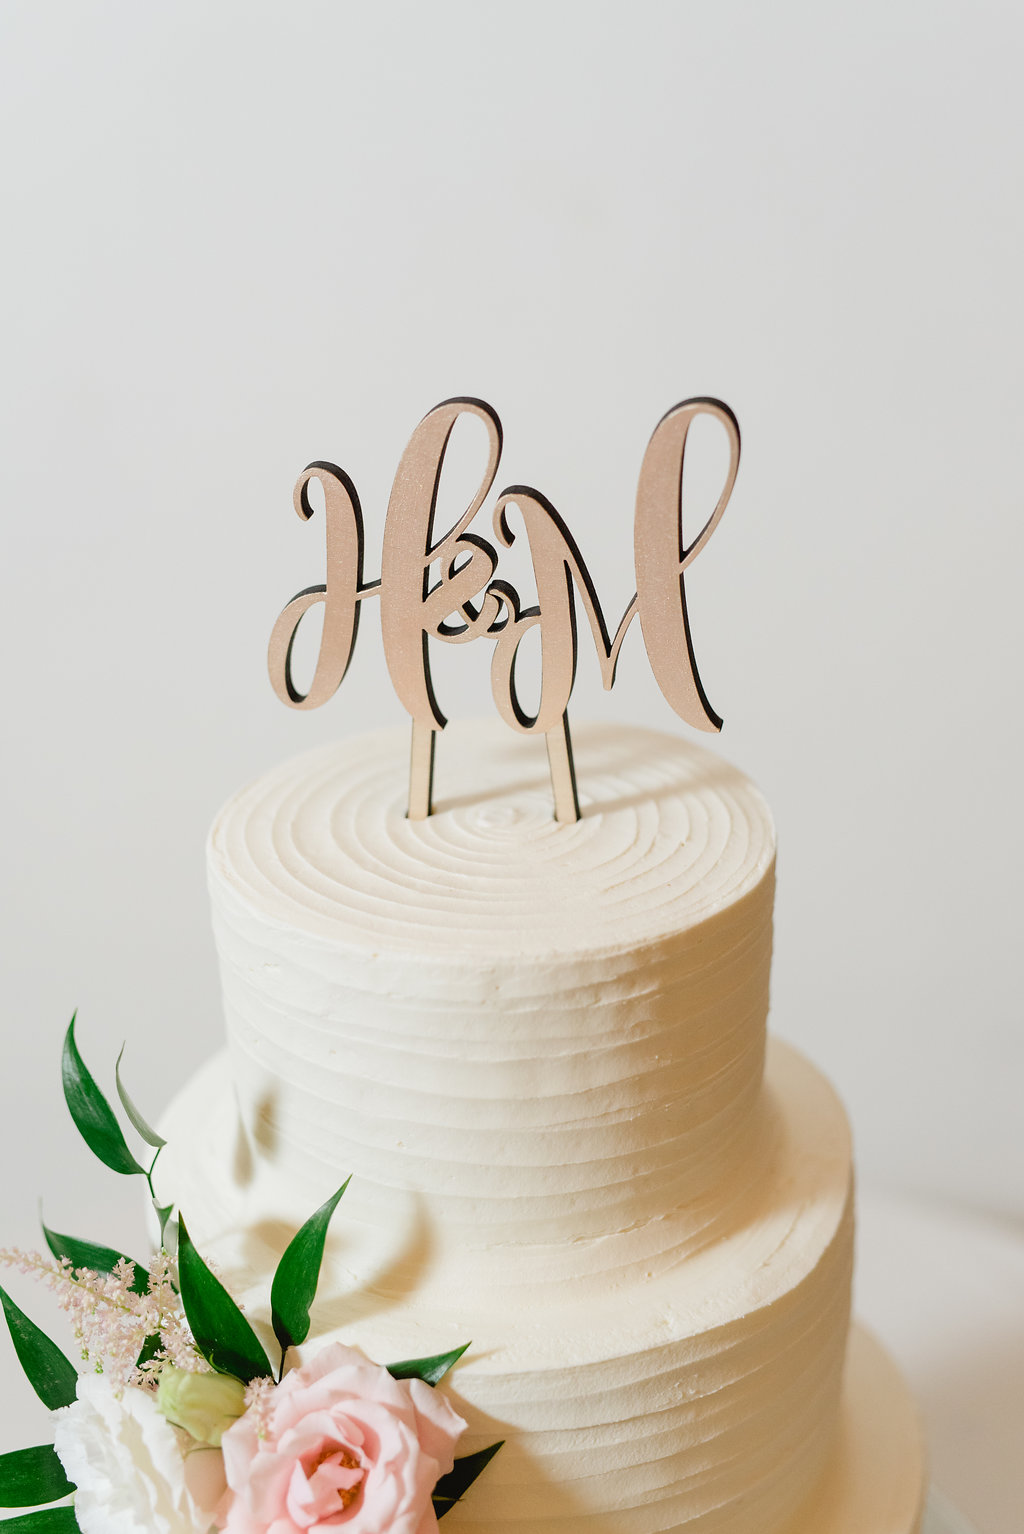 Wedding cake with flowers and initial cake topper for Pittsburgh wedding at Hotel Monaco